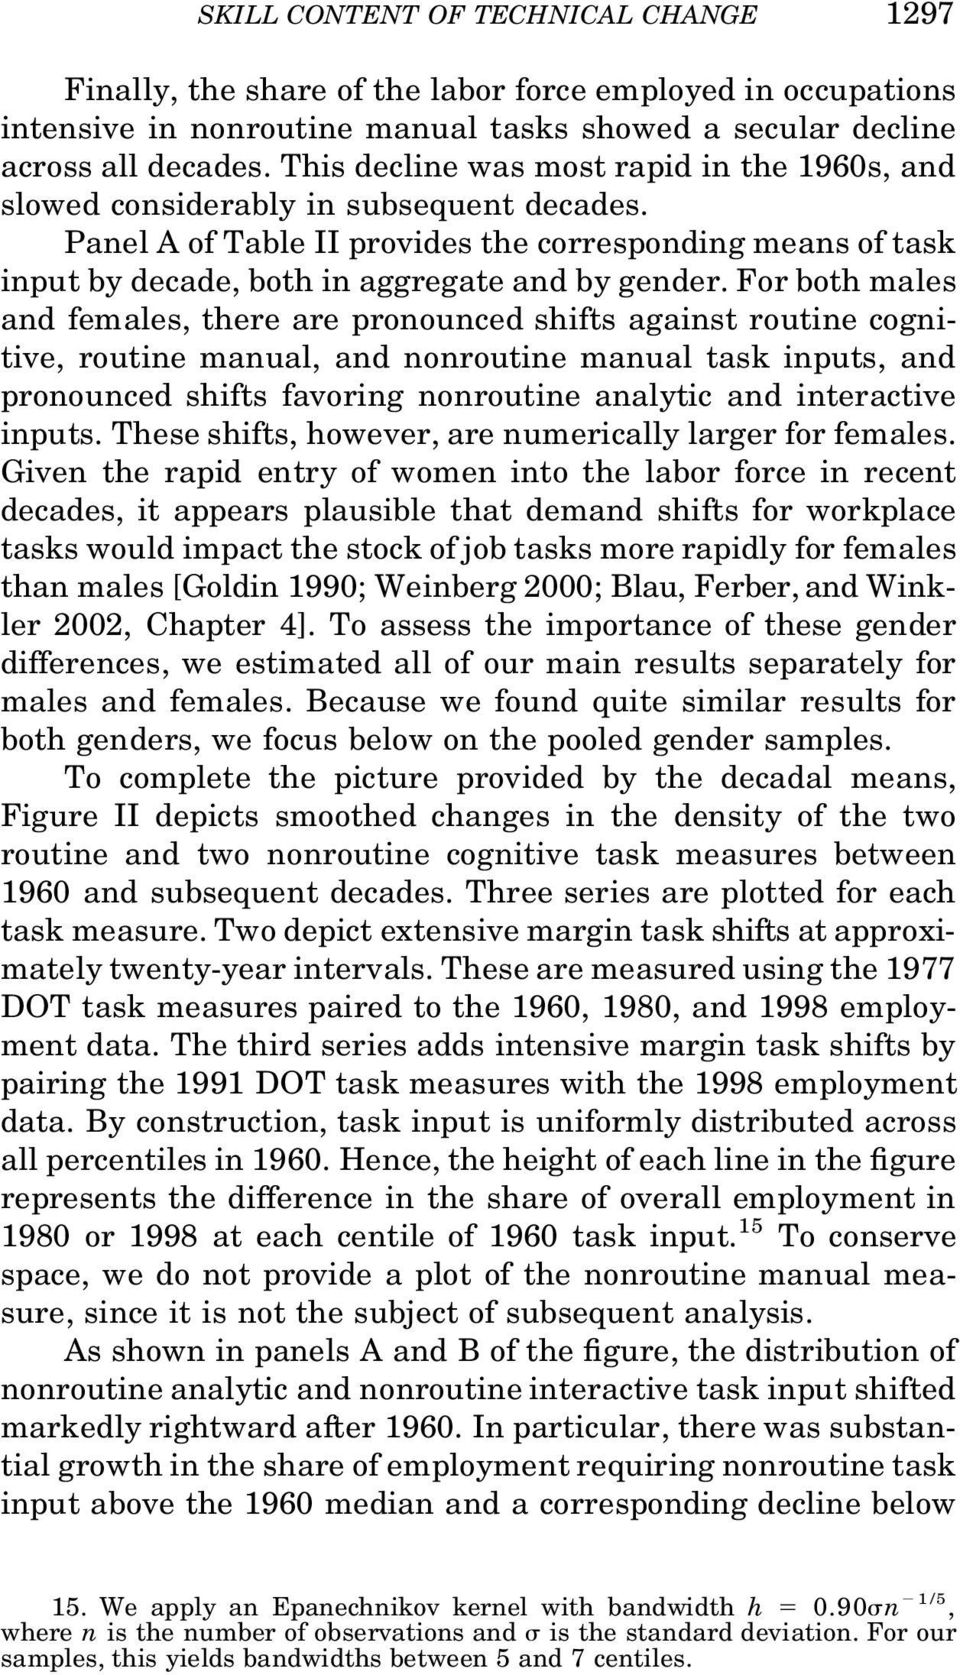 For both males and females, there are pronounced shifts against routine cognitive, routine manual, and nonroutine manual task inputs, and pronounced shifts favoring nonroutine analytic and